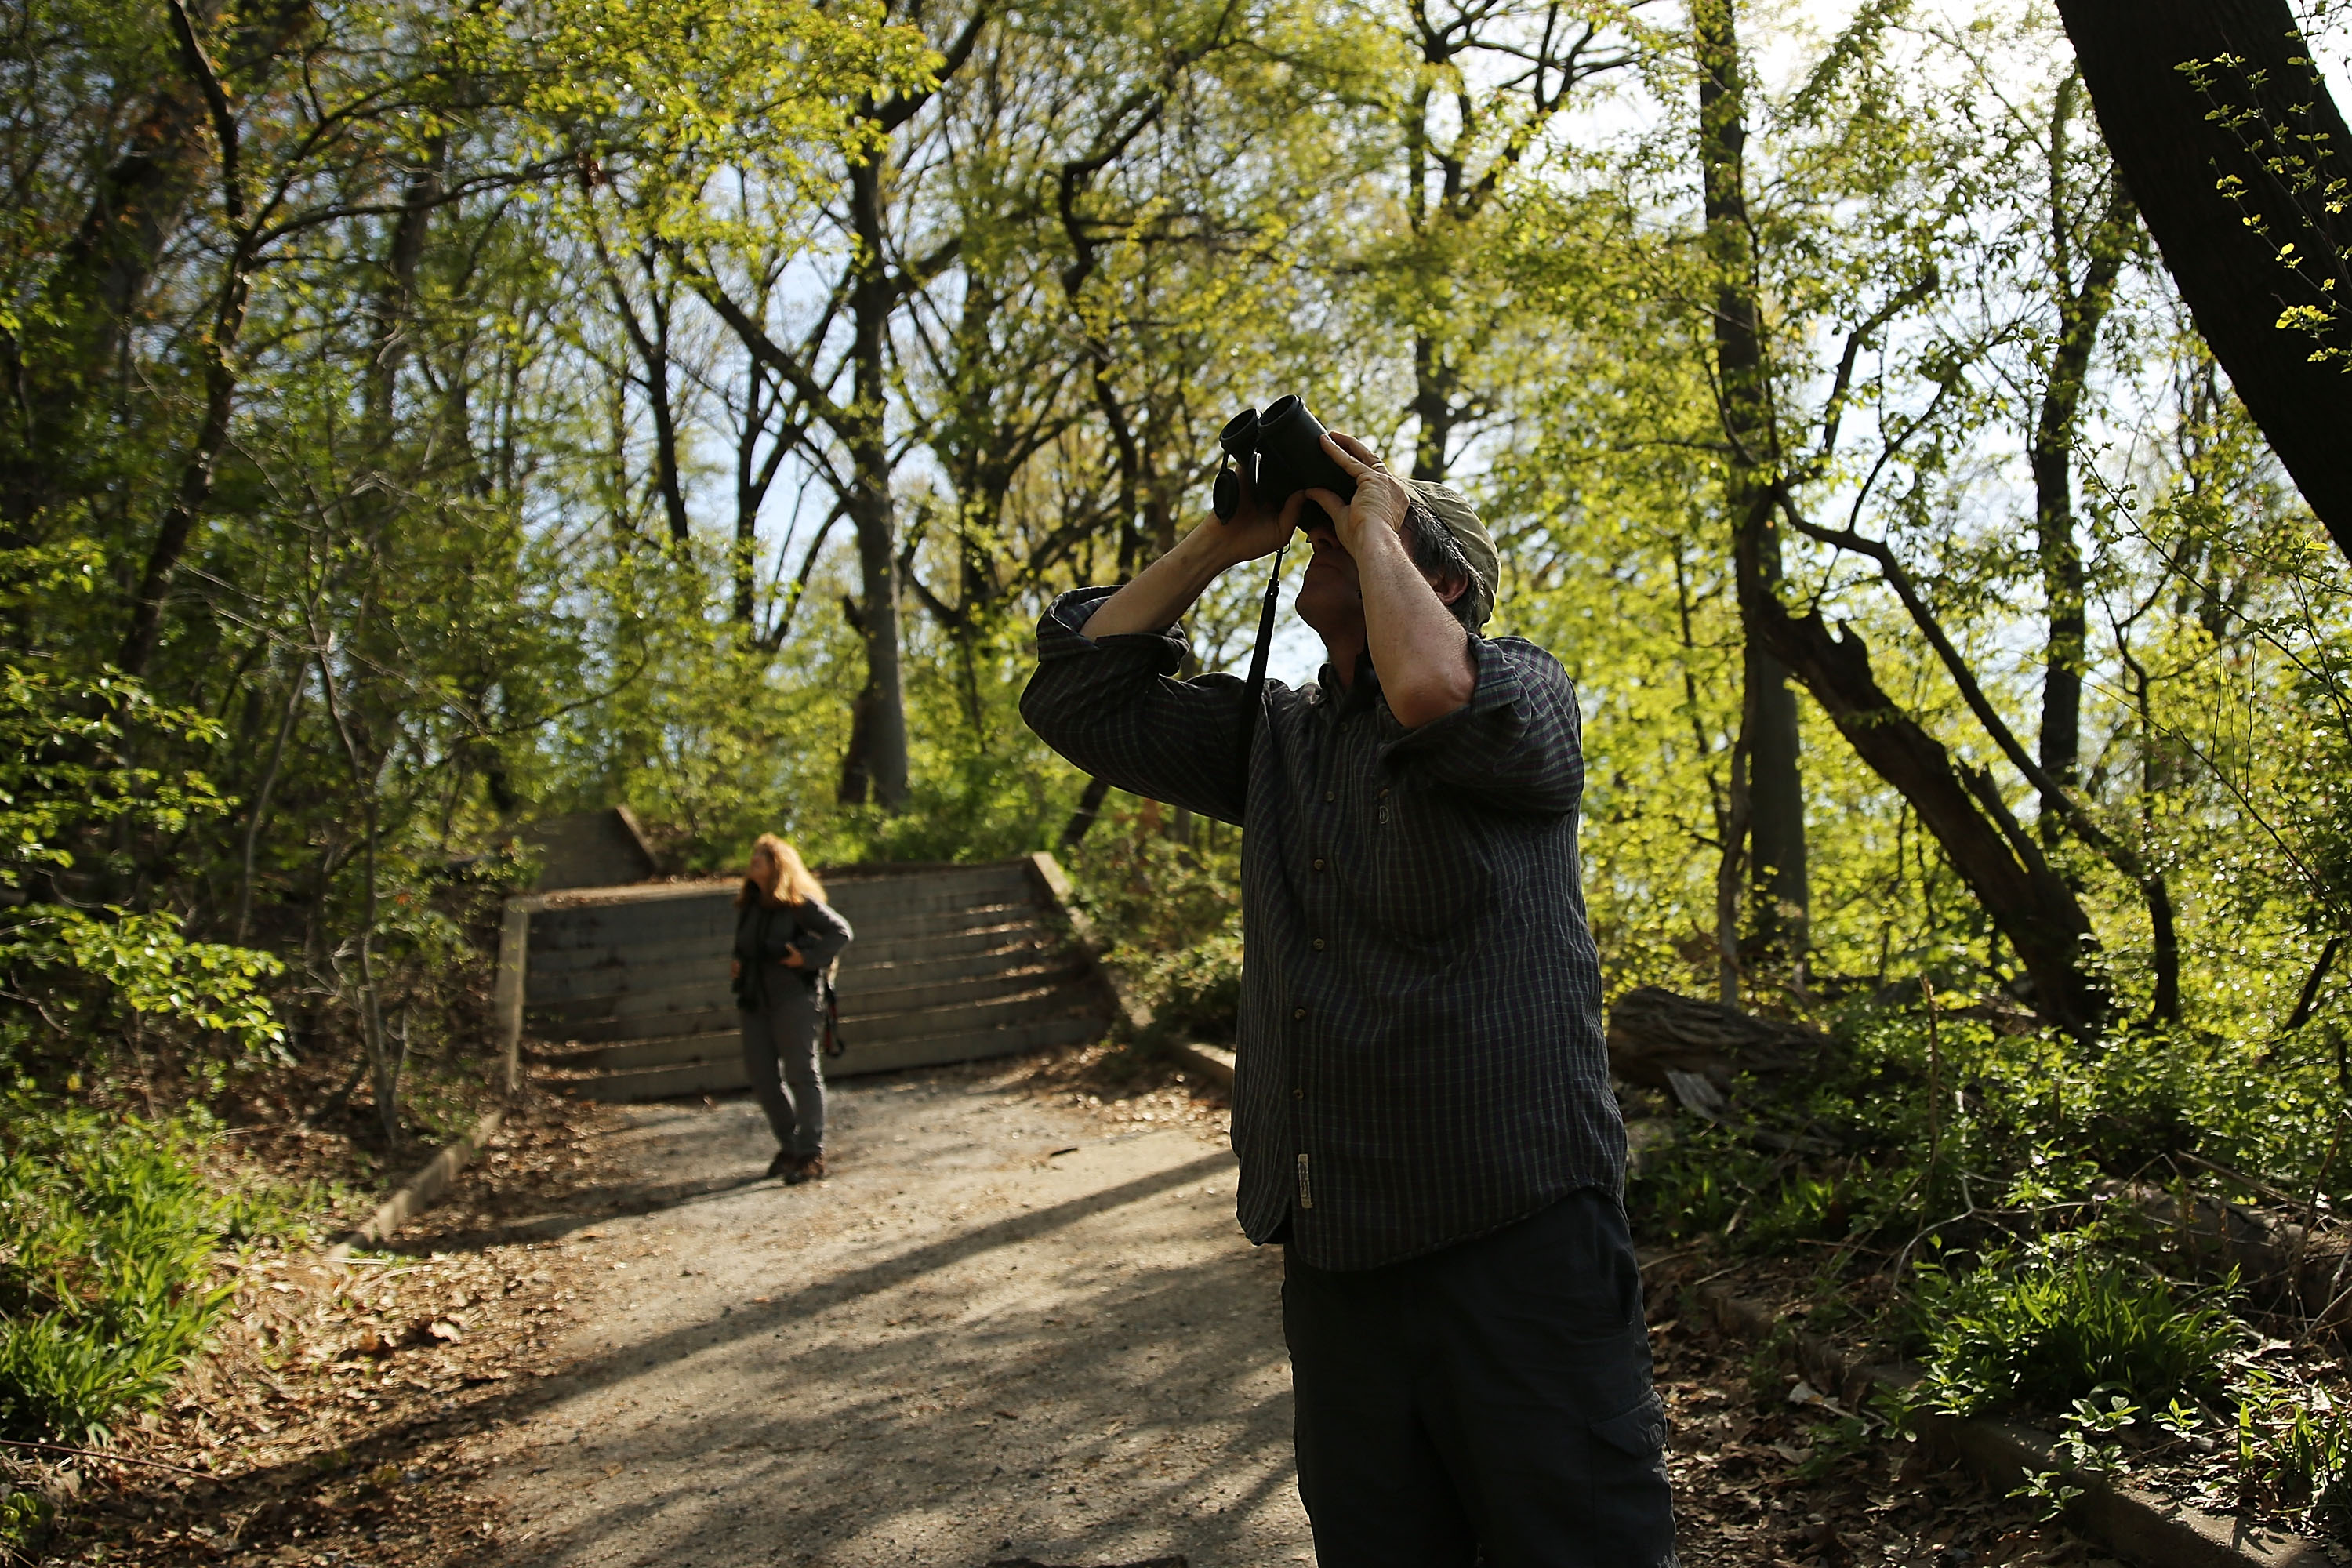 A man holding binoculars to his face gazes up into the green canopy of trees.